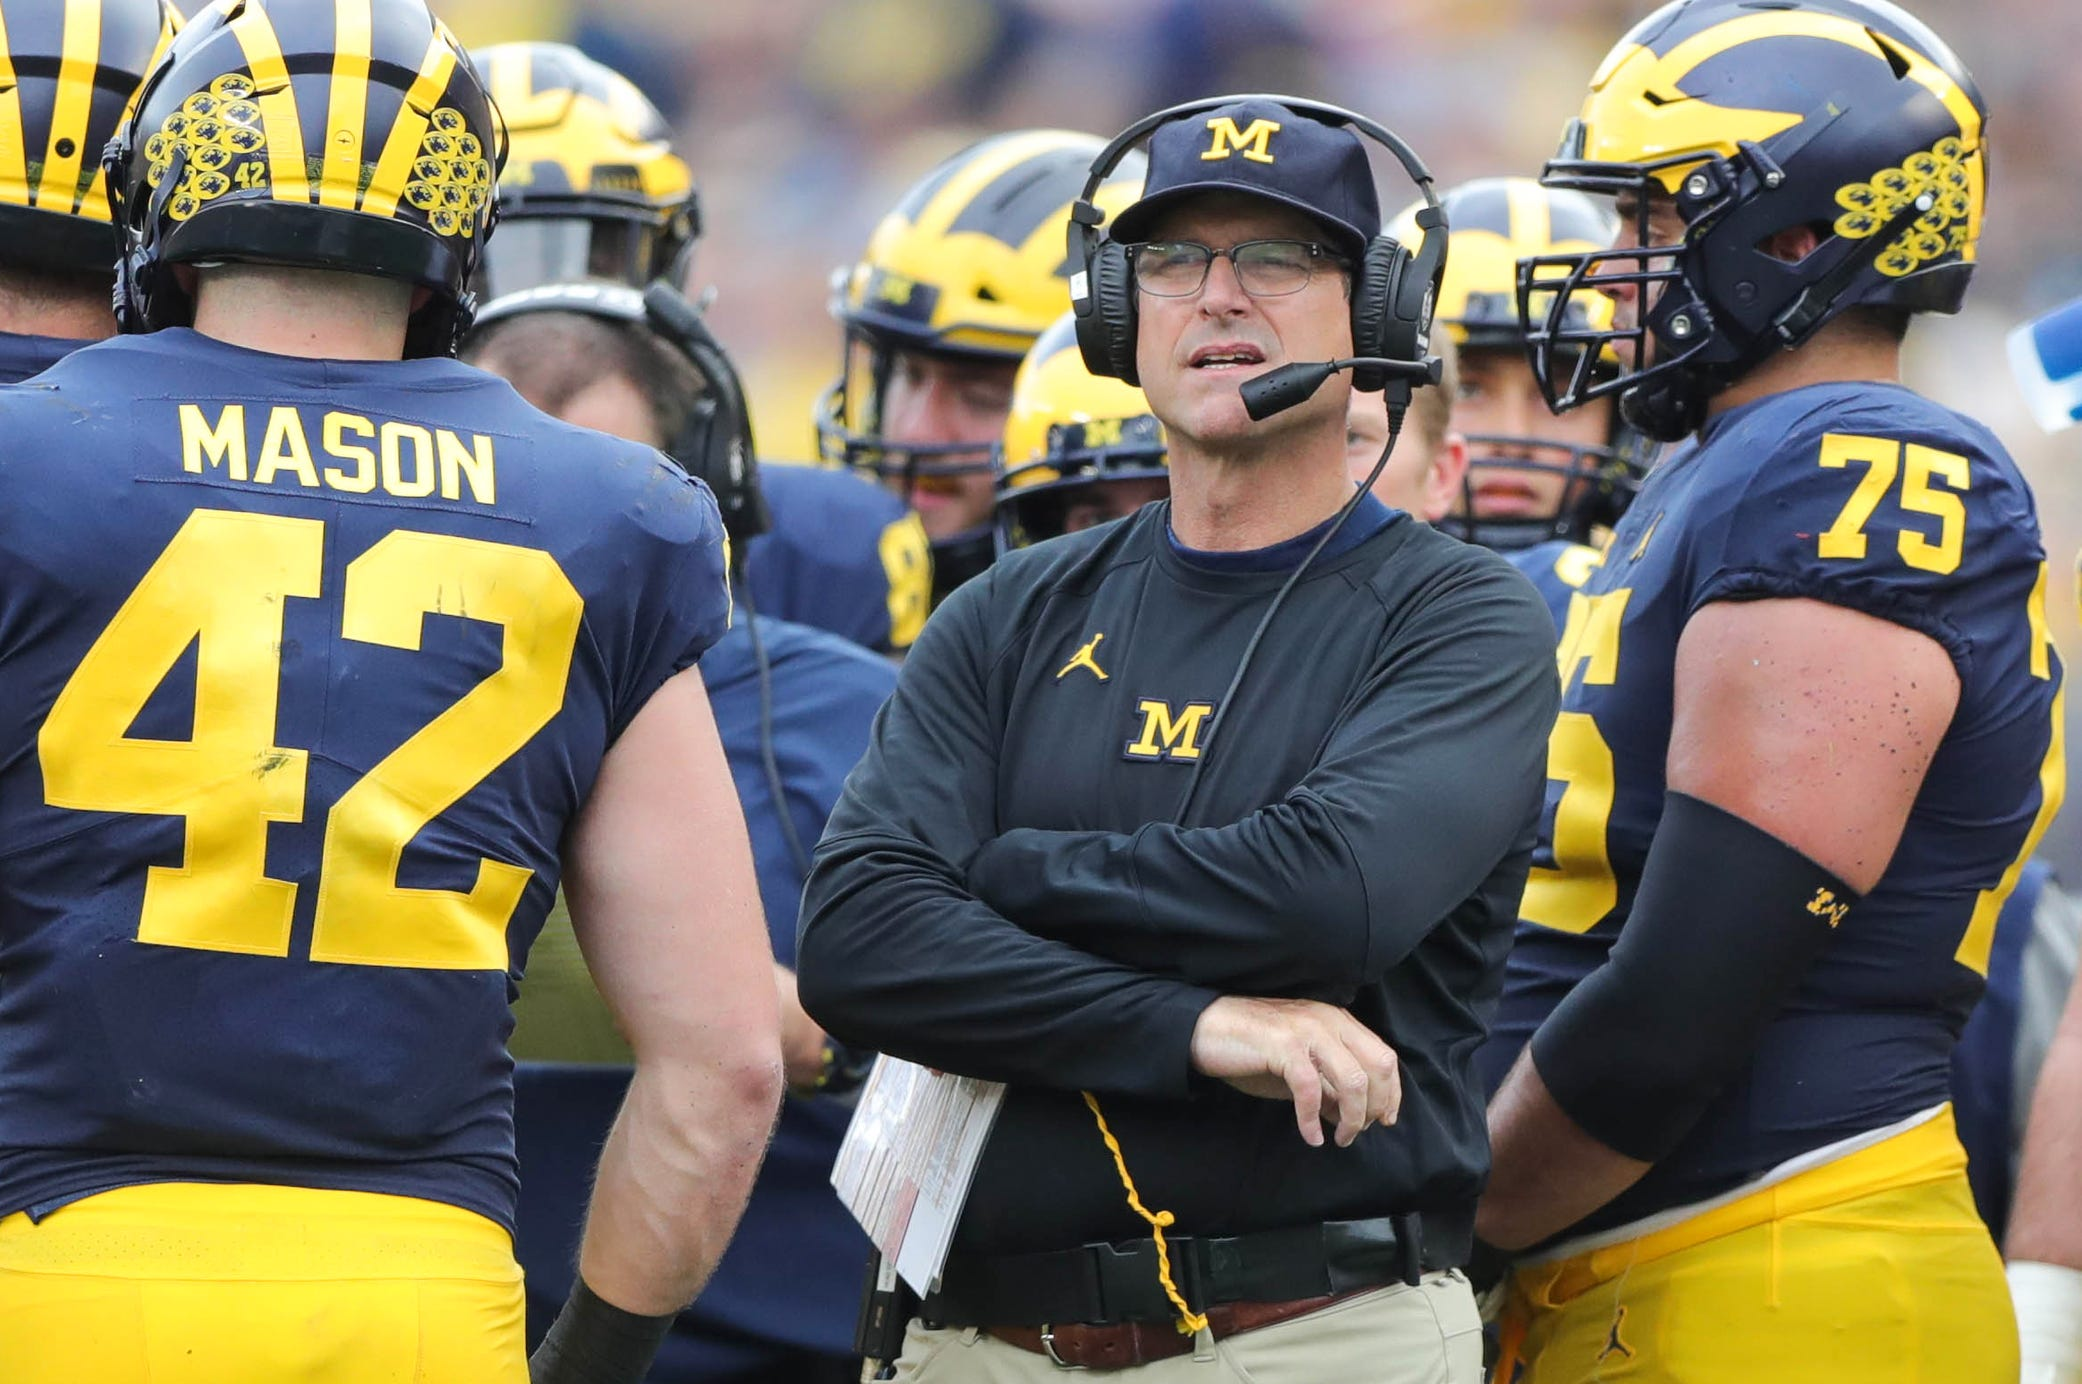 Opinion: Michigan football and Jim Harbaugh face a catch-22 with his future